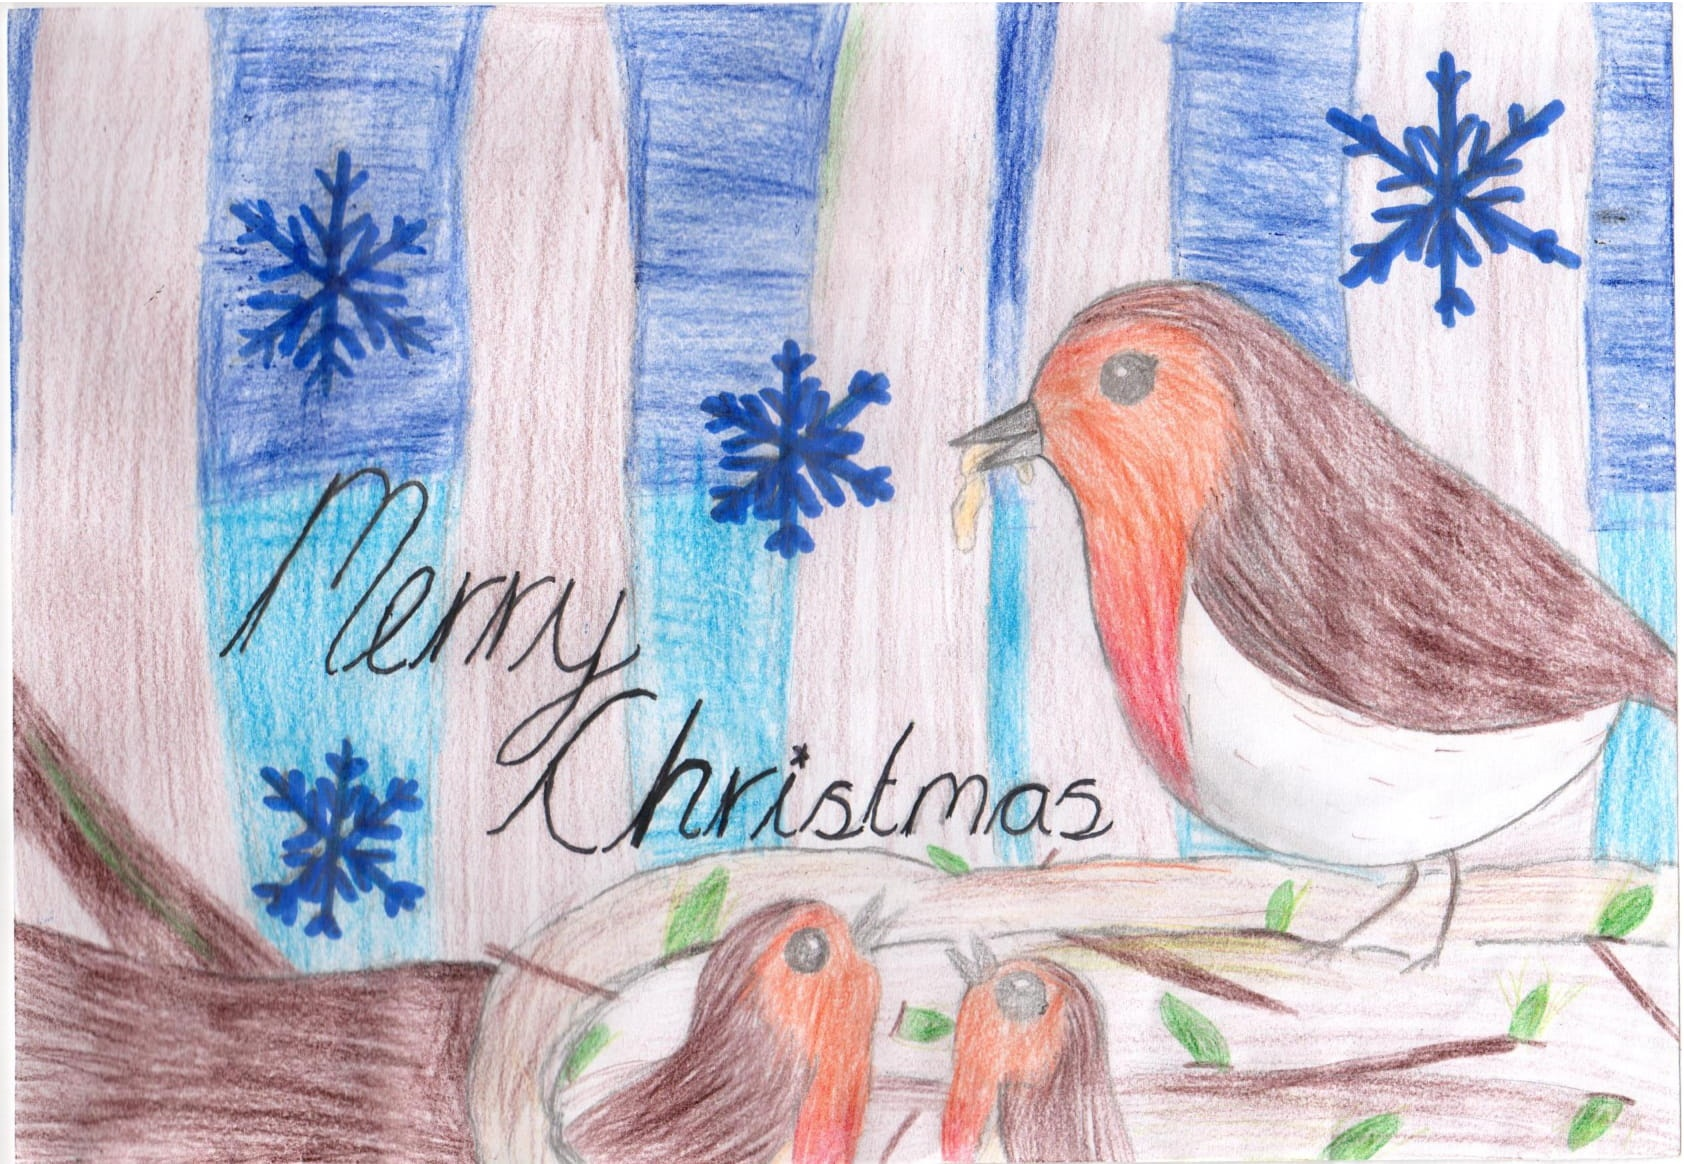 The winning entry from Valerie of Bromstone Primary School in Broadstairs